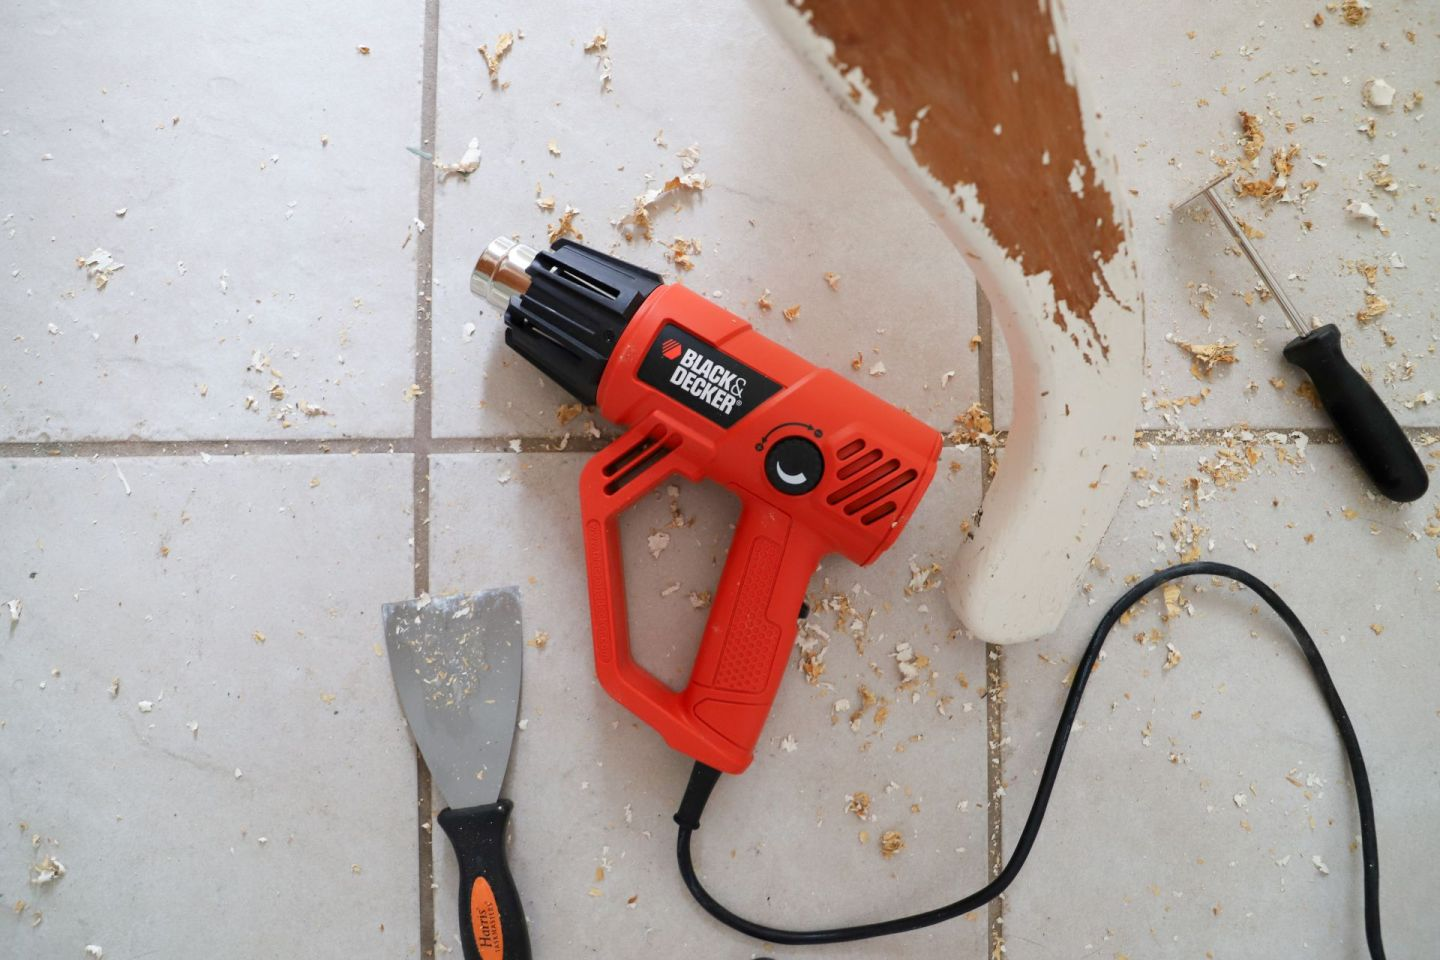 Using a heat gun to strip paint